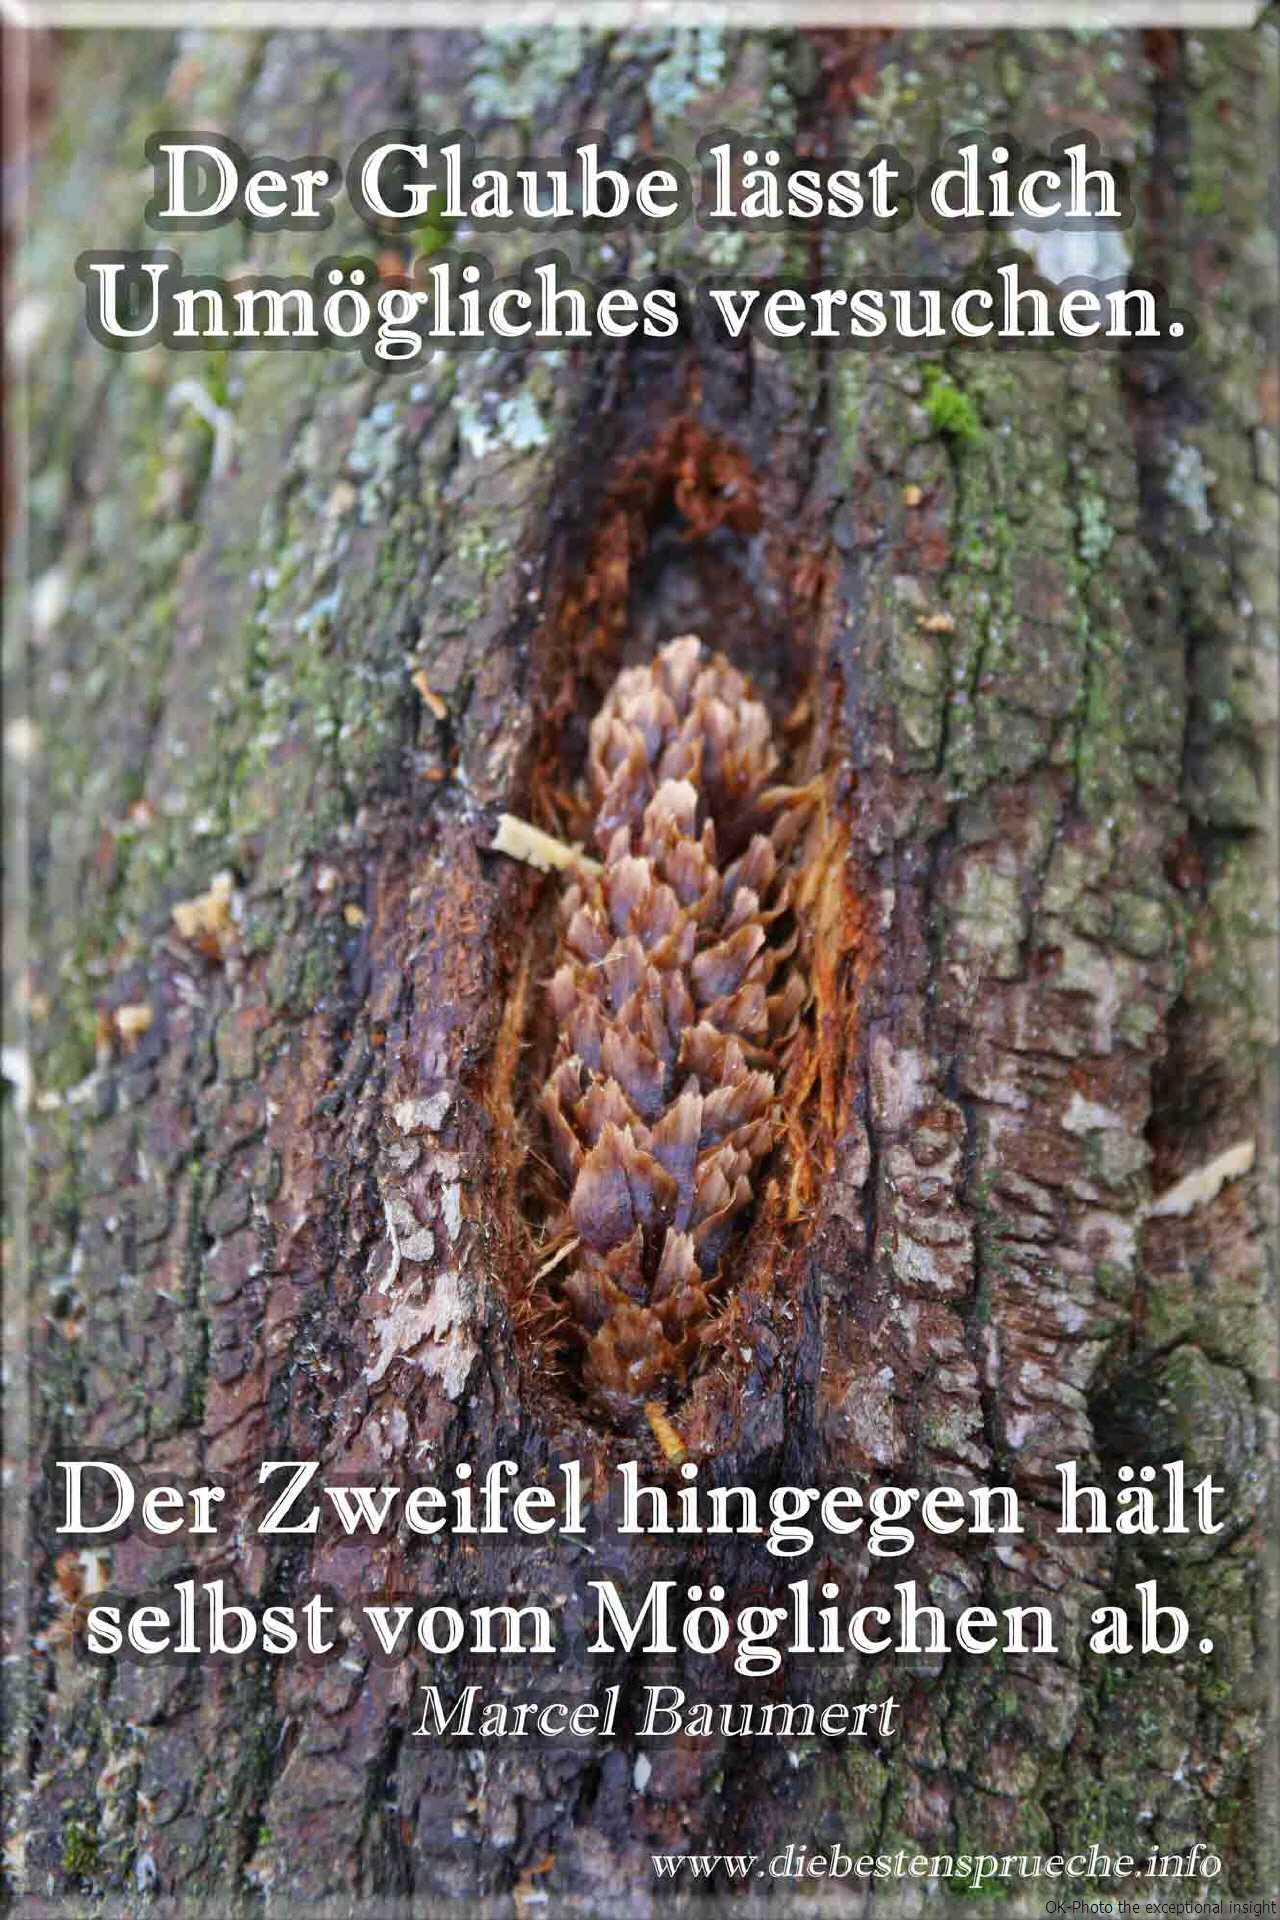 Image Result For Beste Zitate Witzig